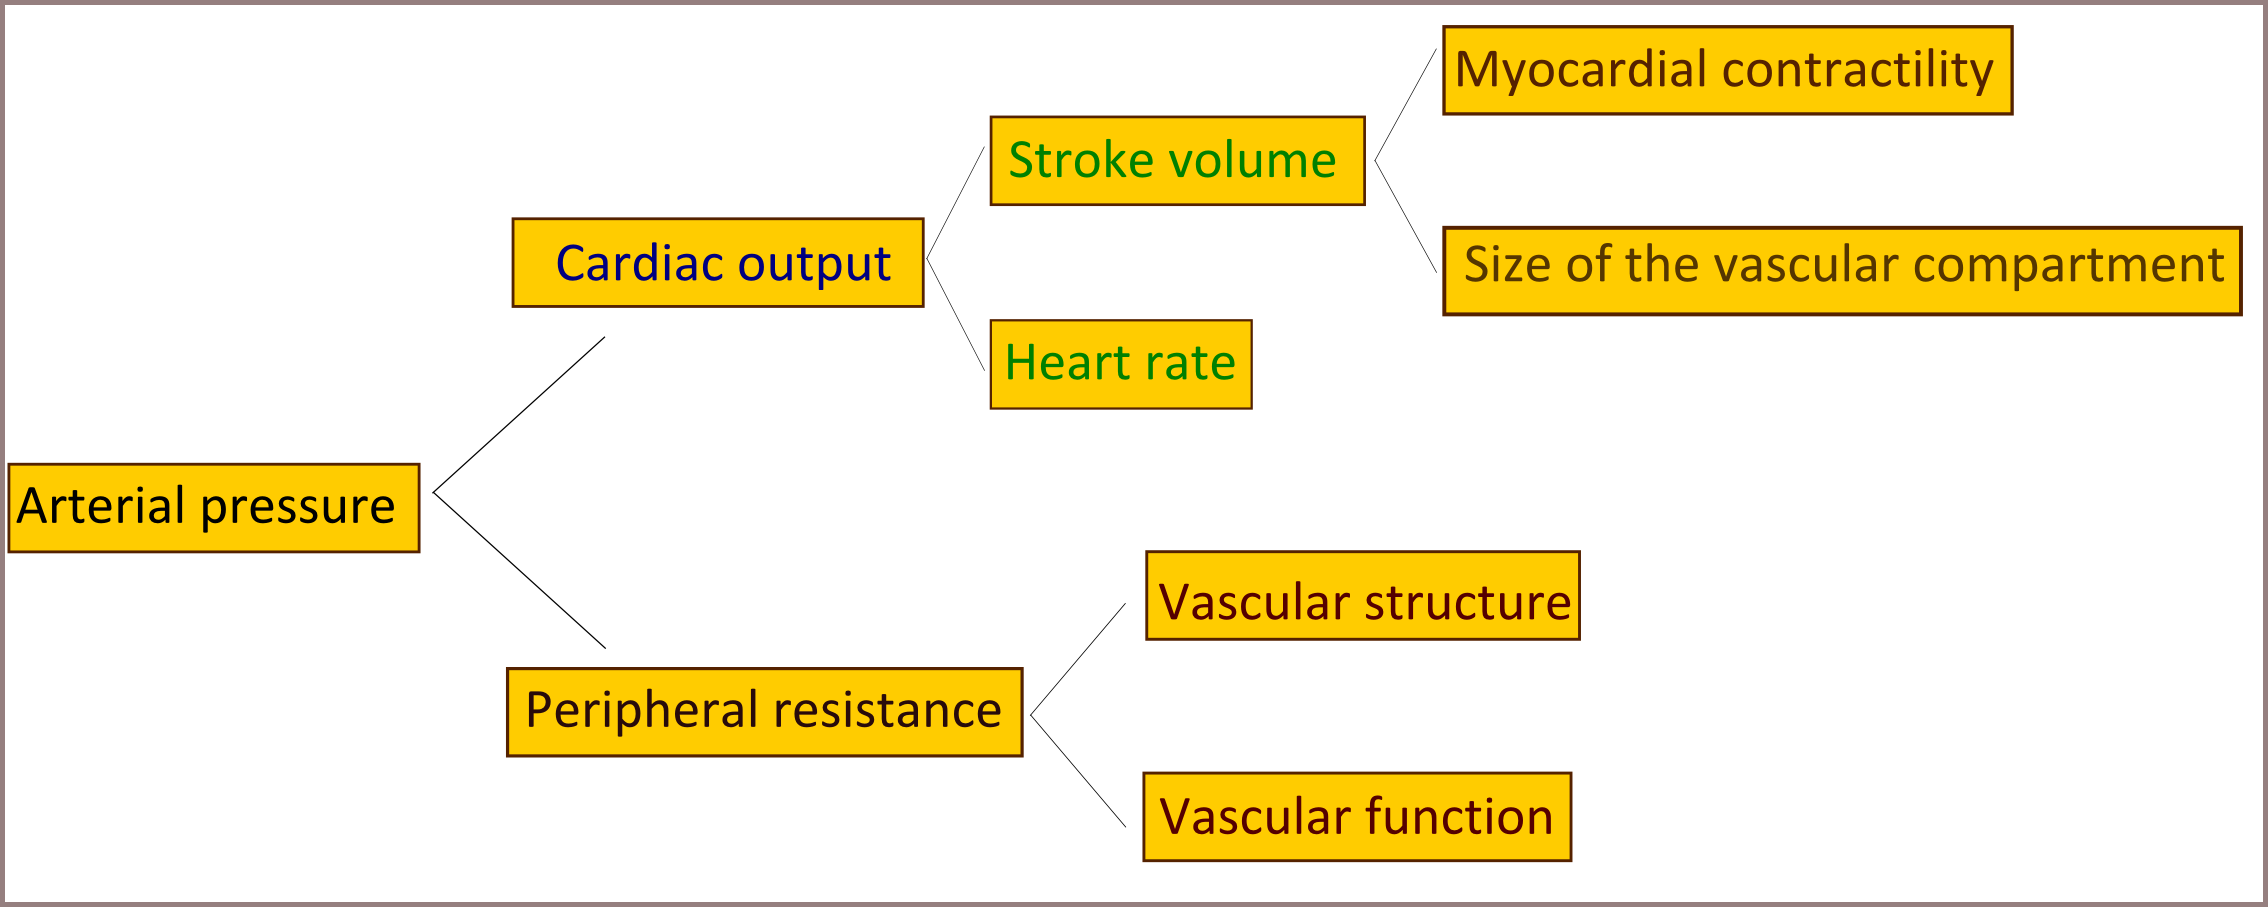 pathophysiology of hypertension Pathophysiology of hypertension in ckd the pathogenesis of hypertension in ckd is complex and involves many factors there are an increasing number of factors that are implicated in the blood pressure regulation in ckd ( table 141 .